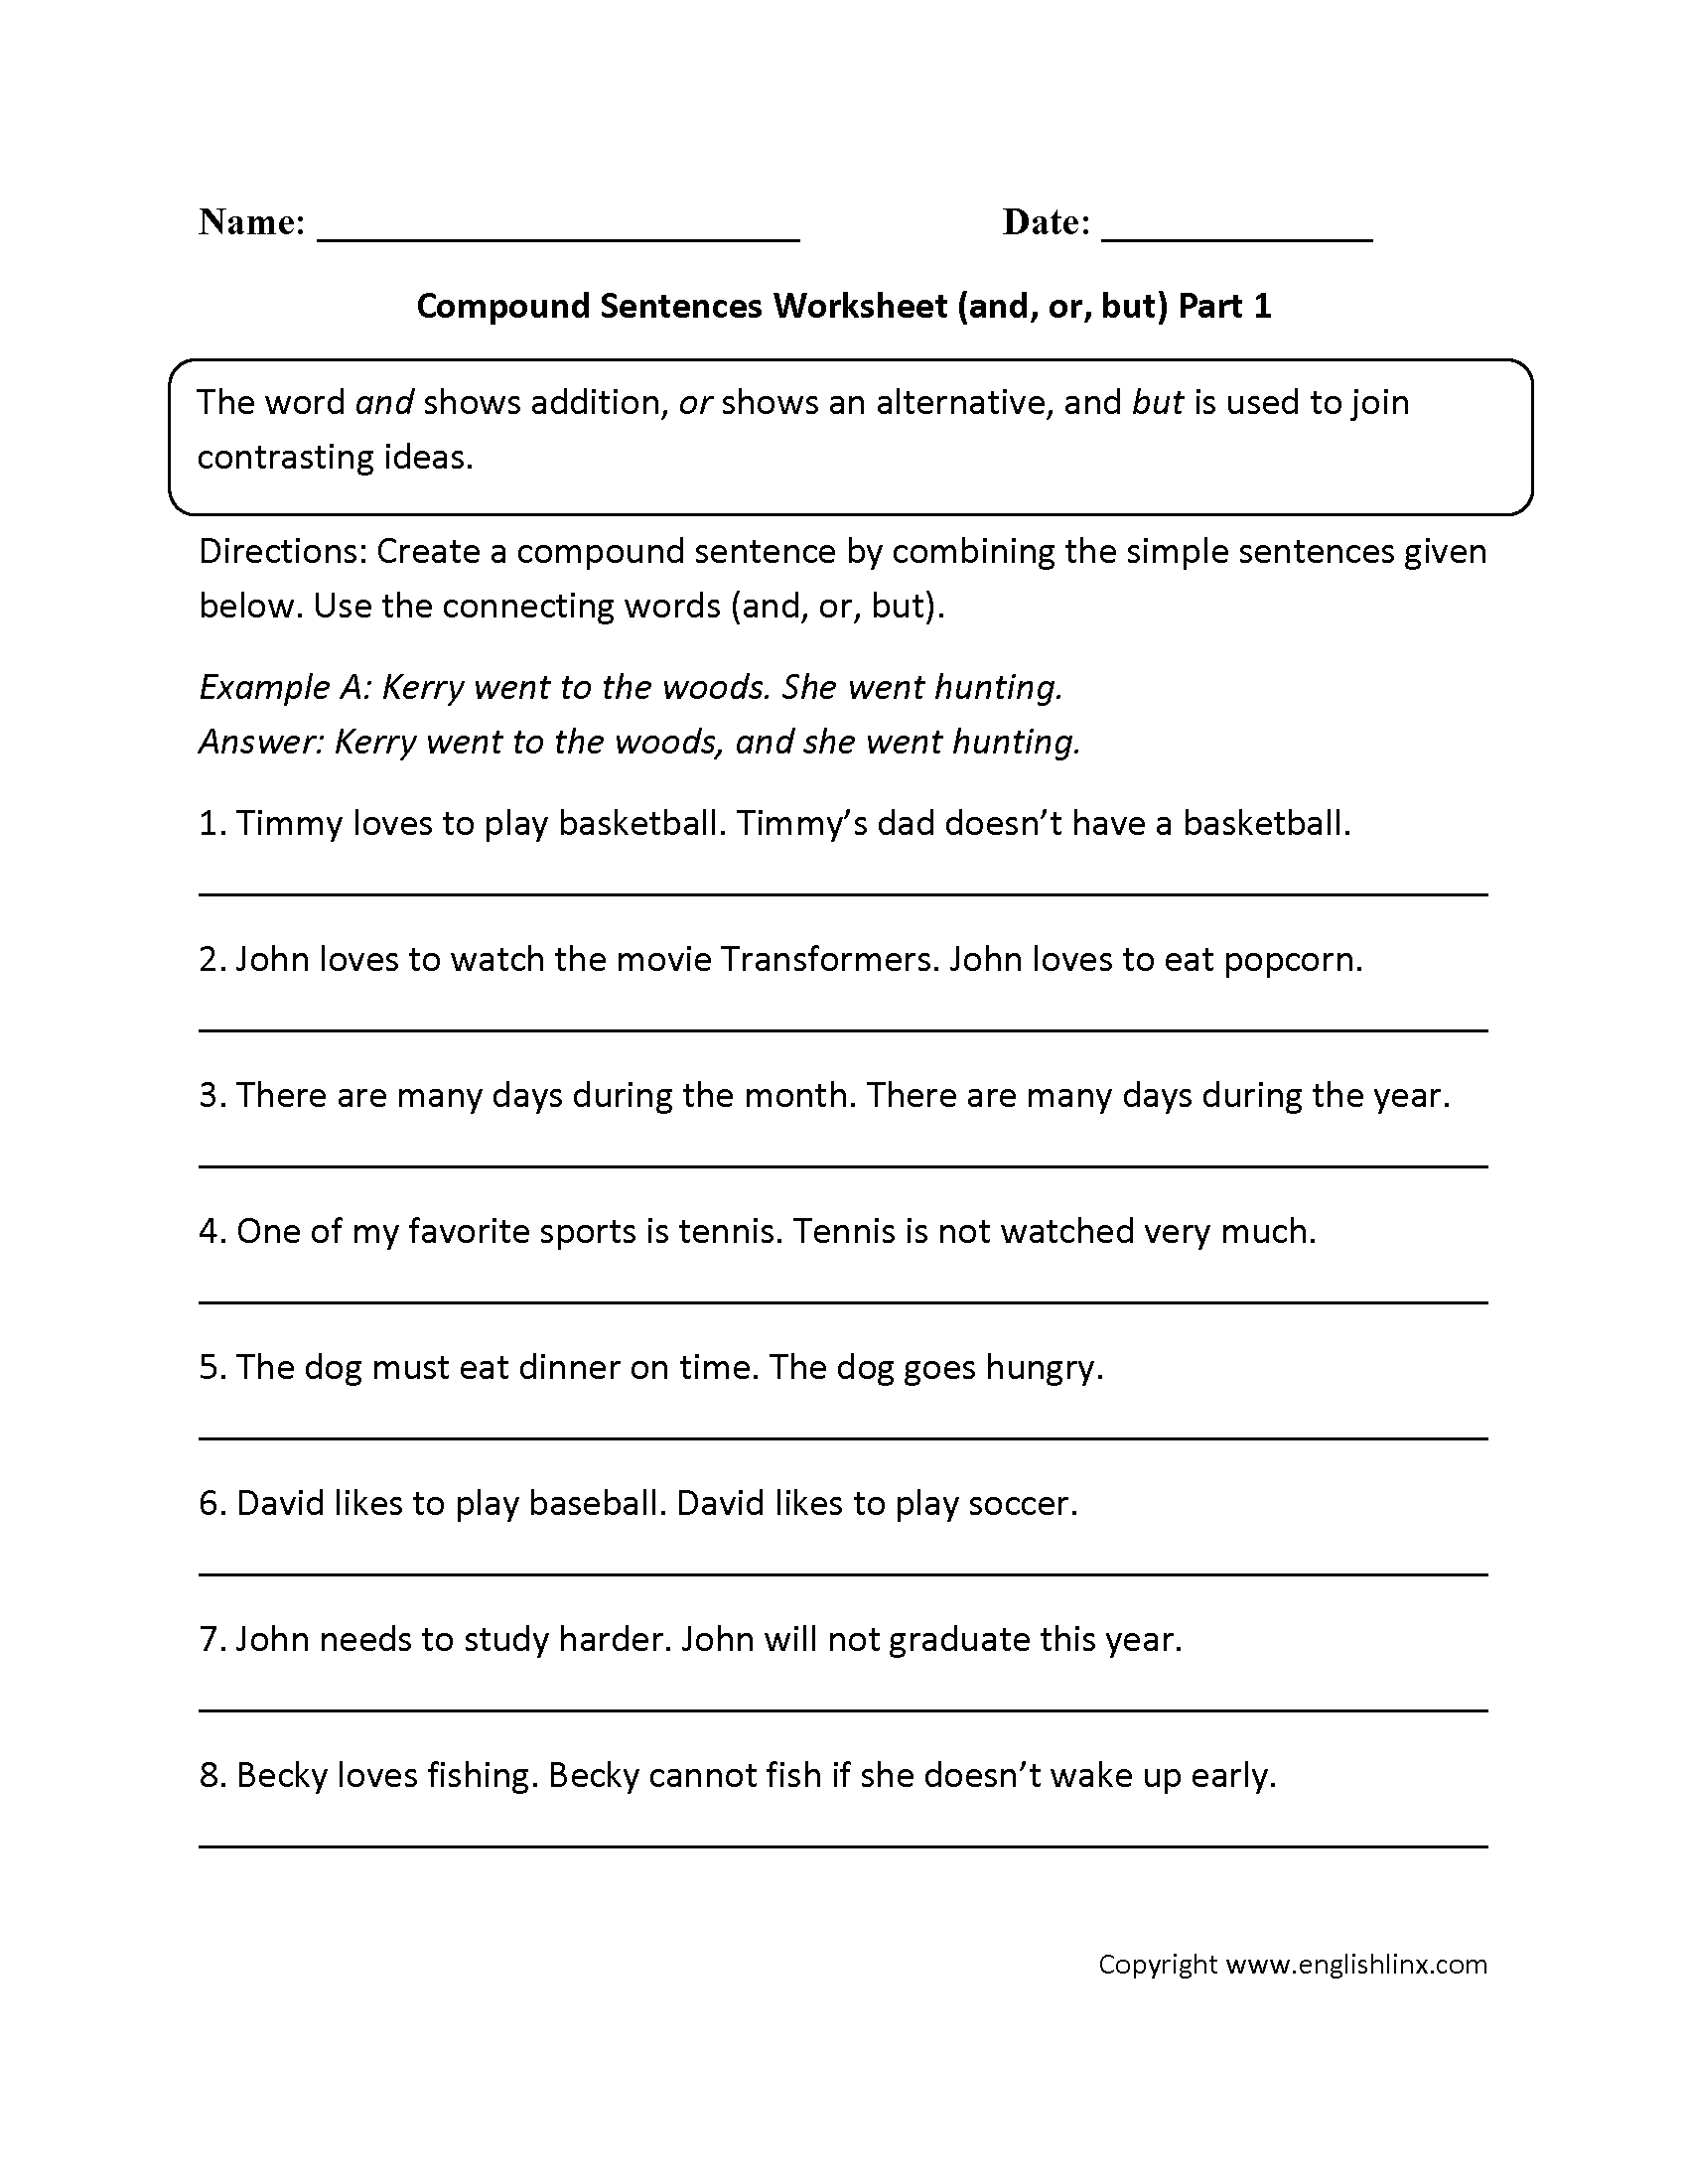 Worksheets Complex Sentences Worksheets complex sentences worksheet pdf delwfg com worksheets compound worksheets